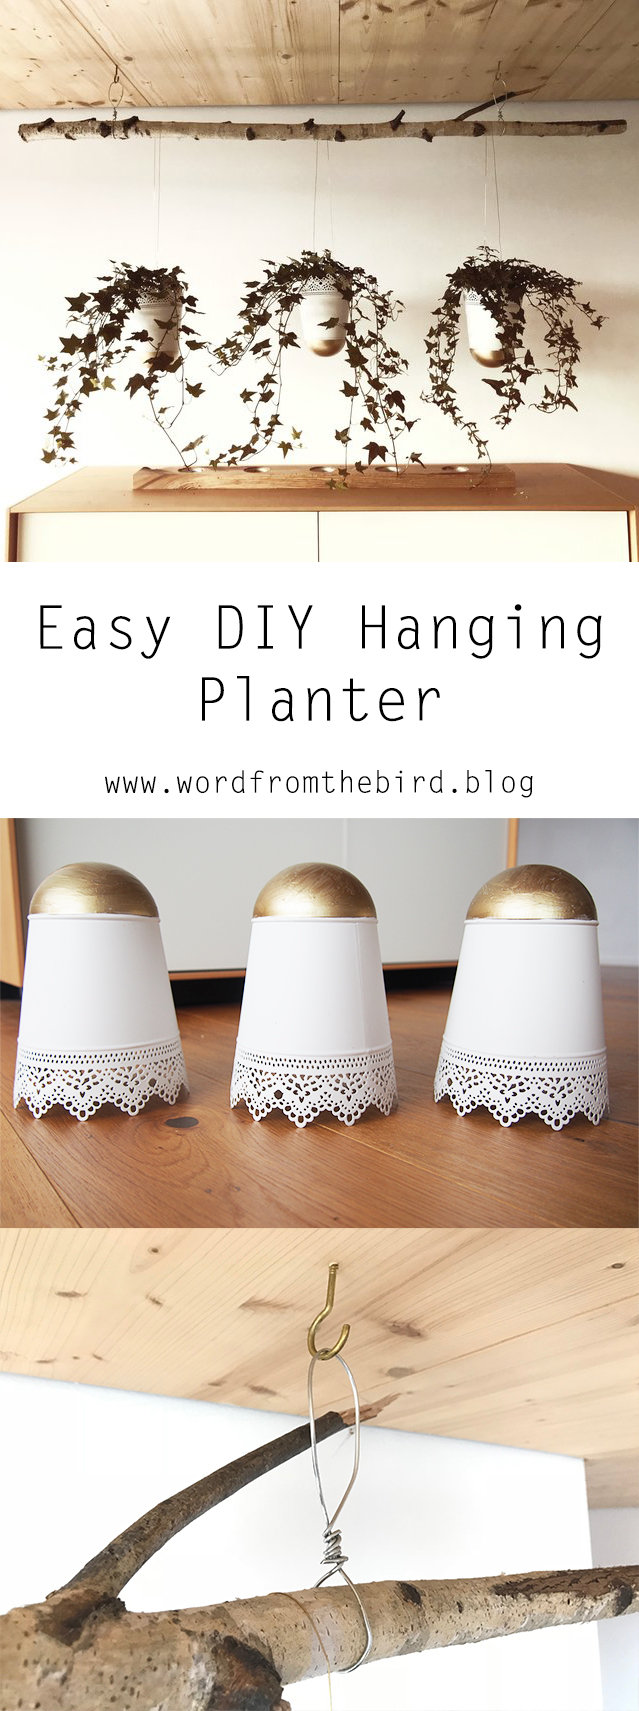 diy hanging planter.jpg